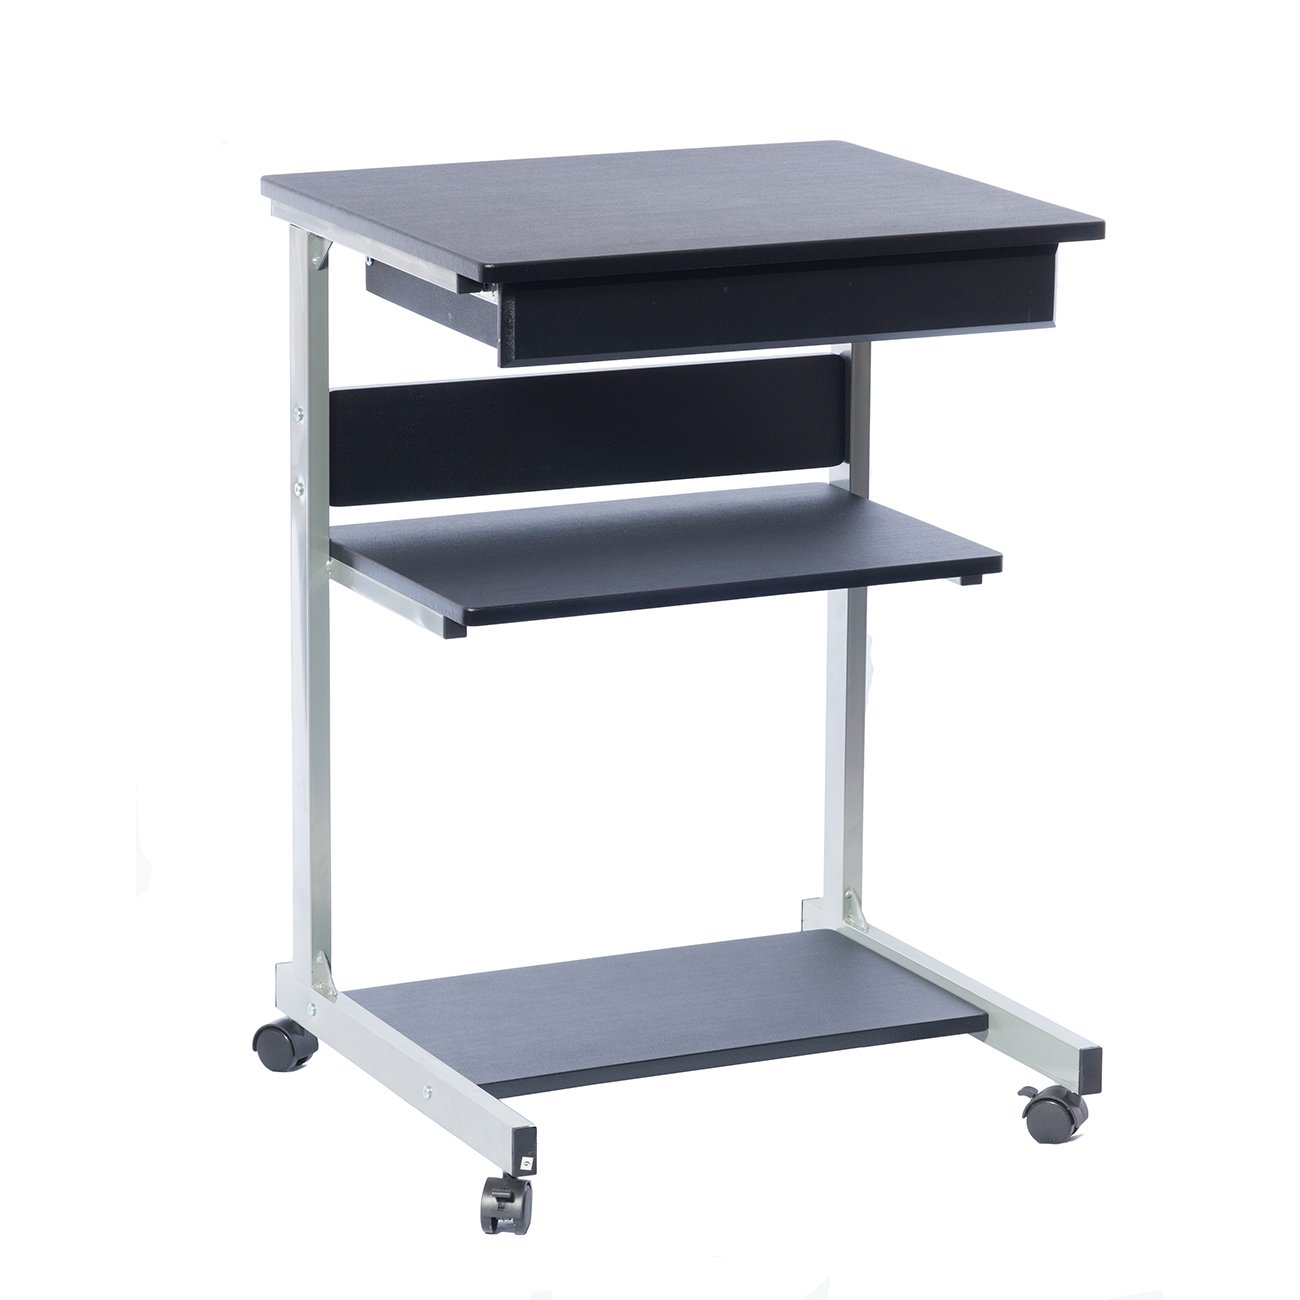 Techni Mobili Modus Metal Computer Student Laptop Desk in Graphite